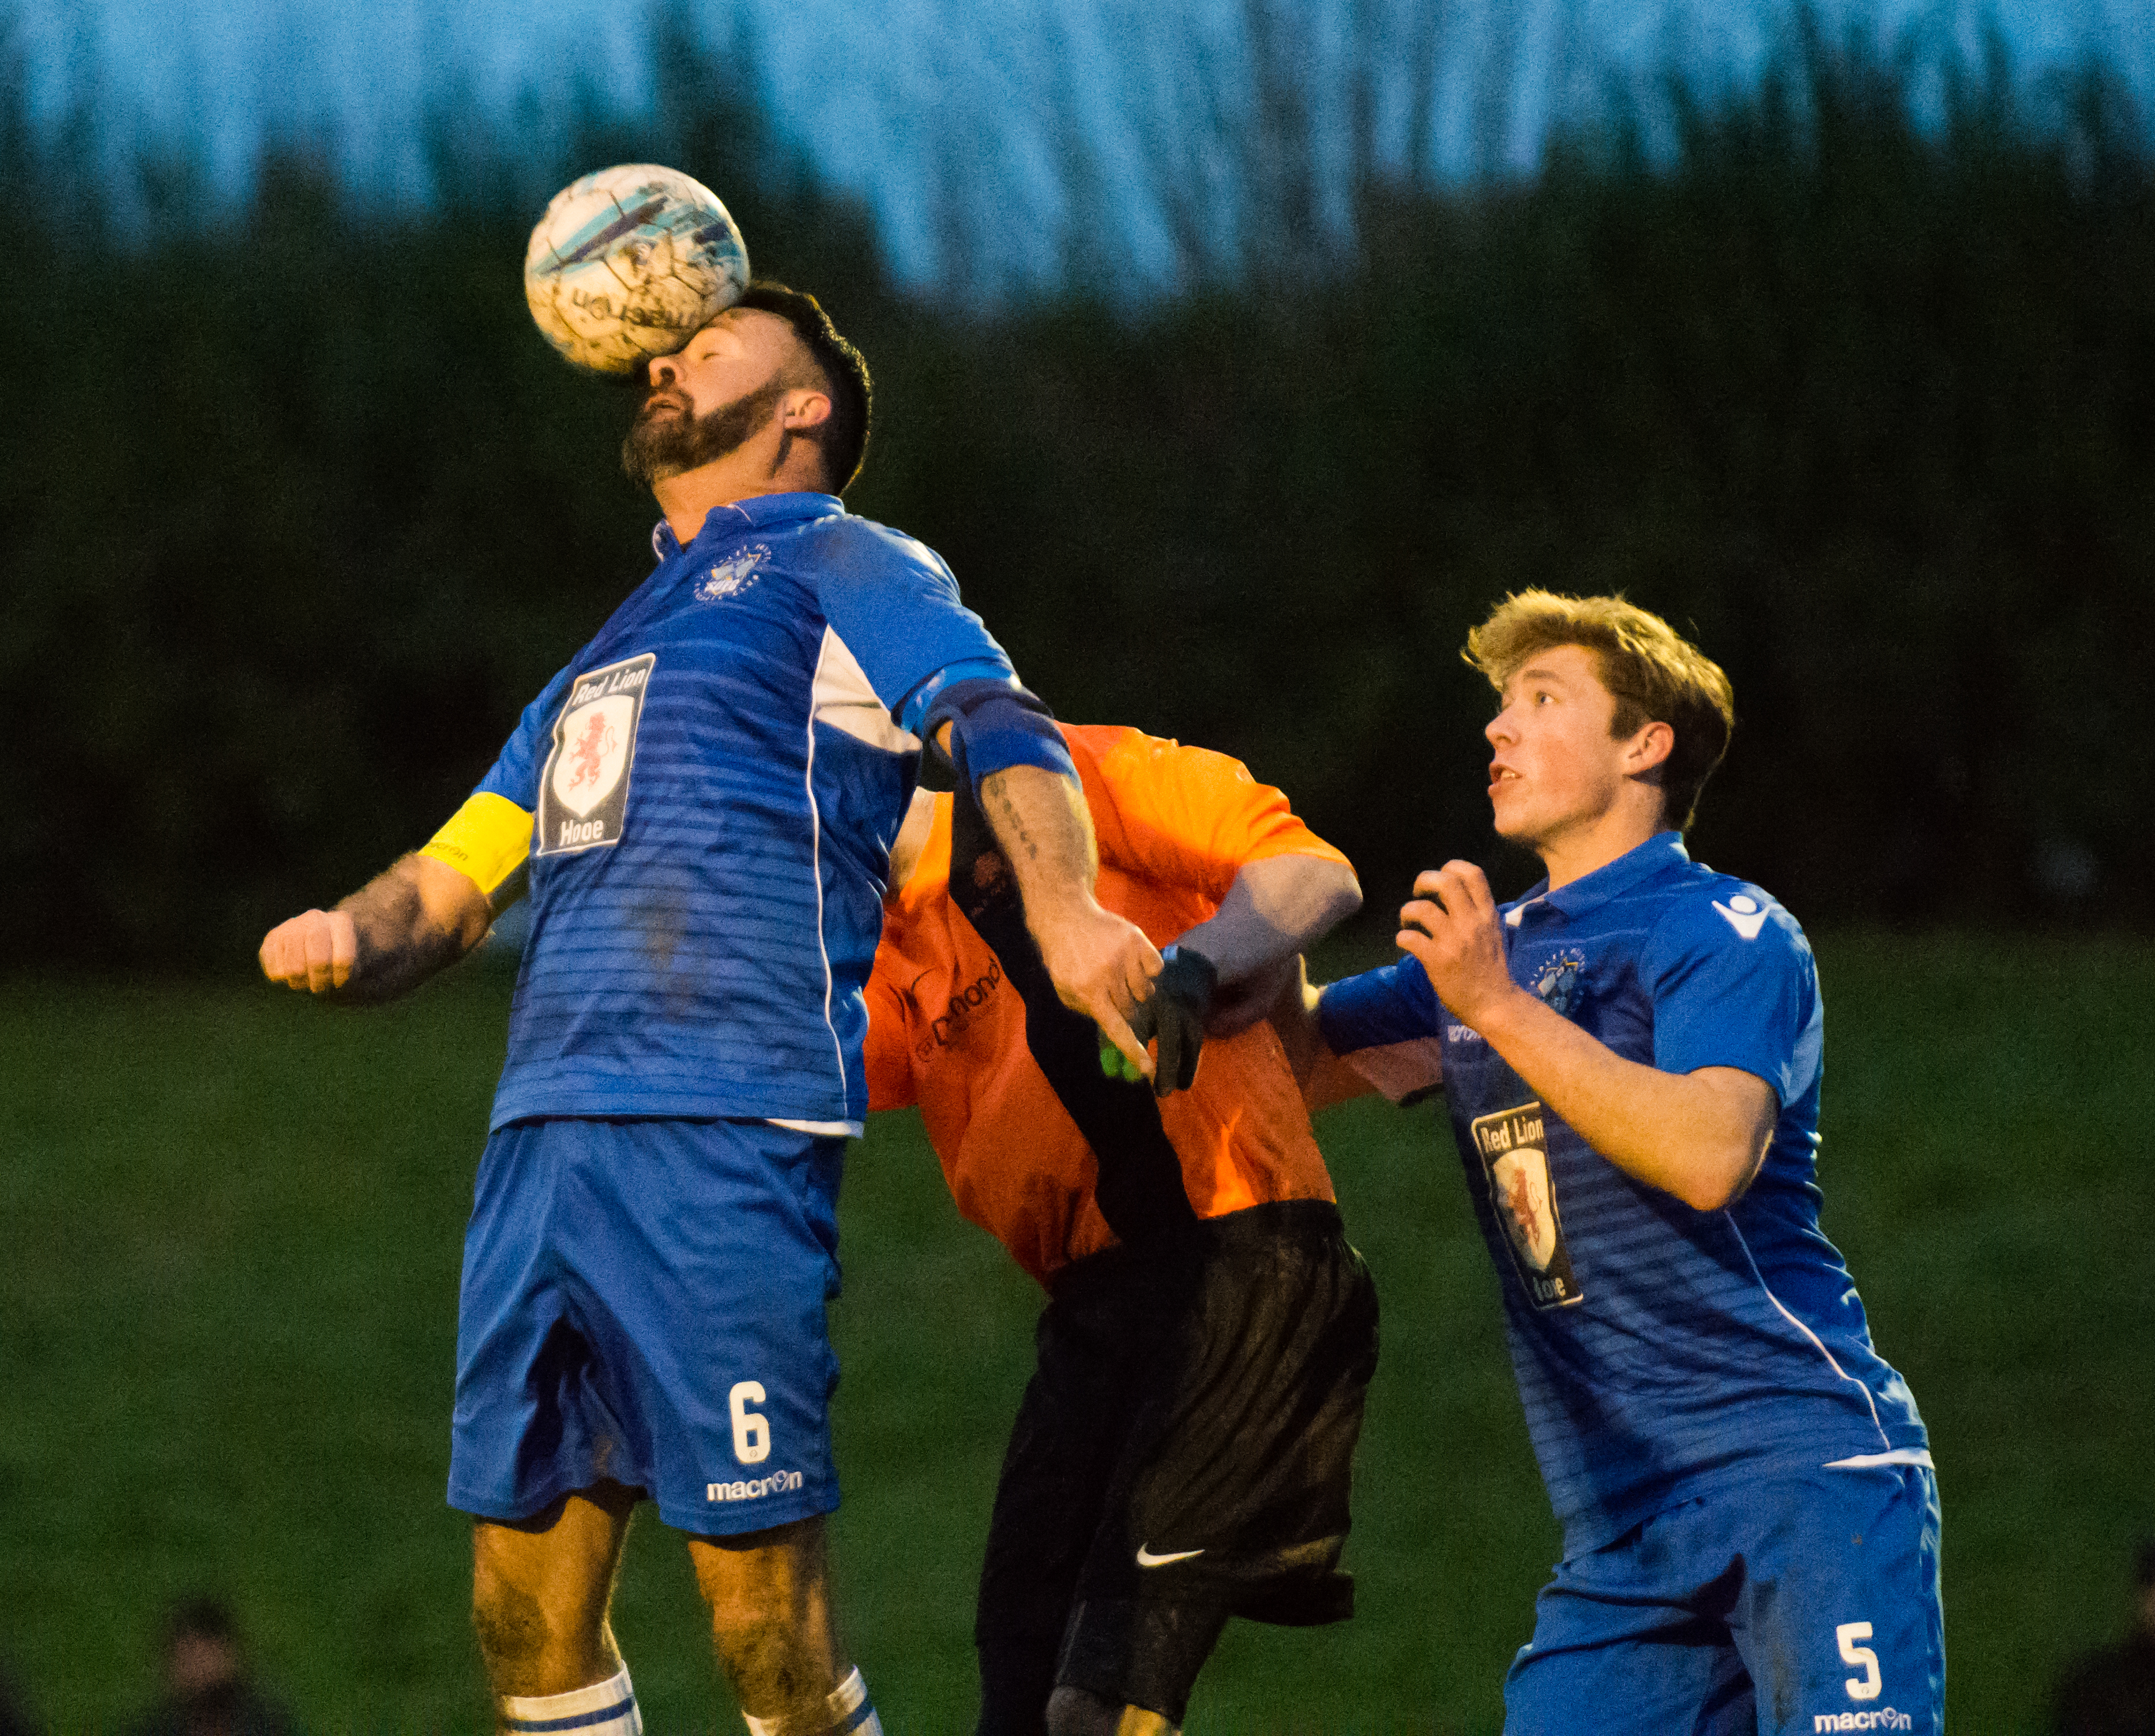 Mile Oak Res vs Sidley United 09.12.17 46